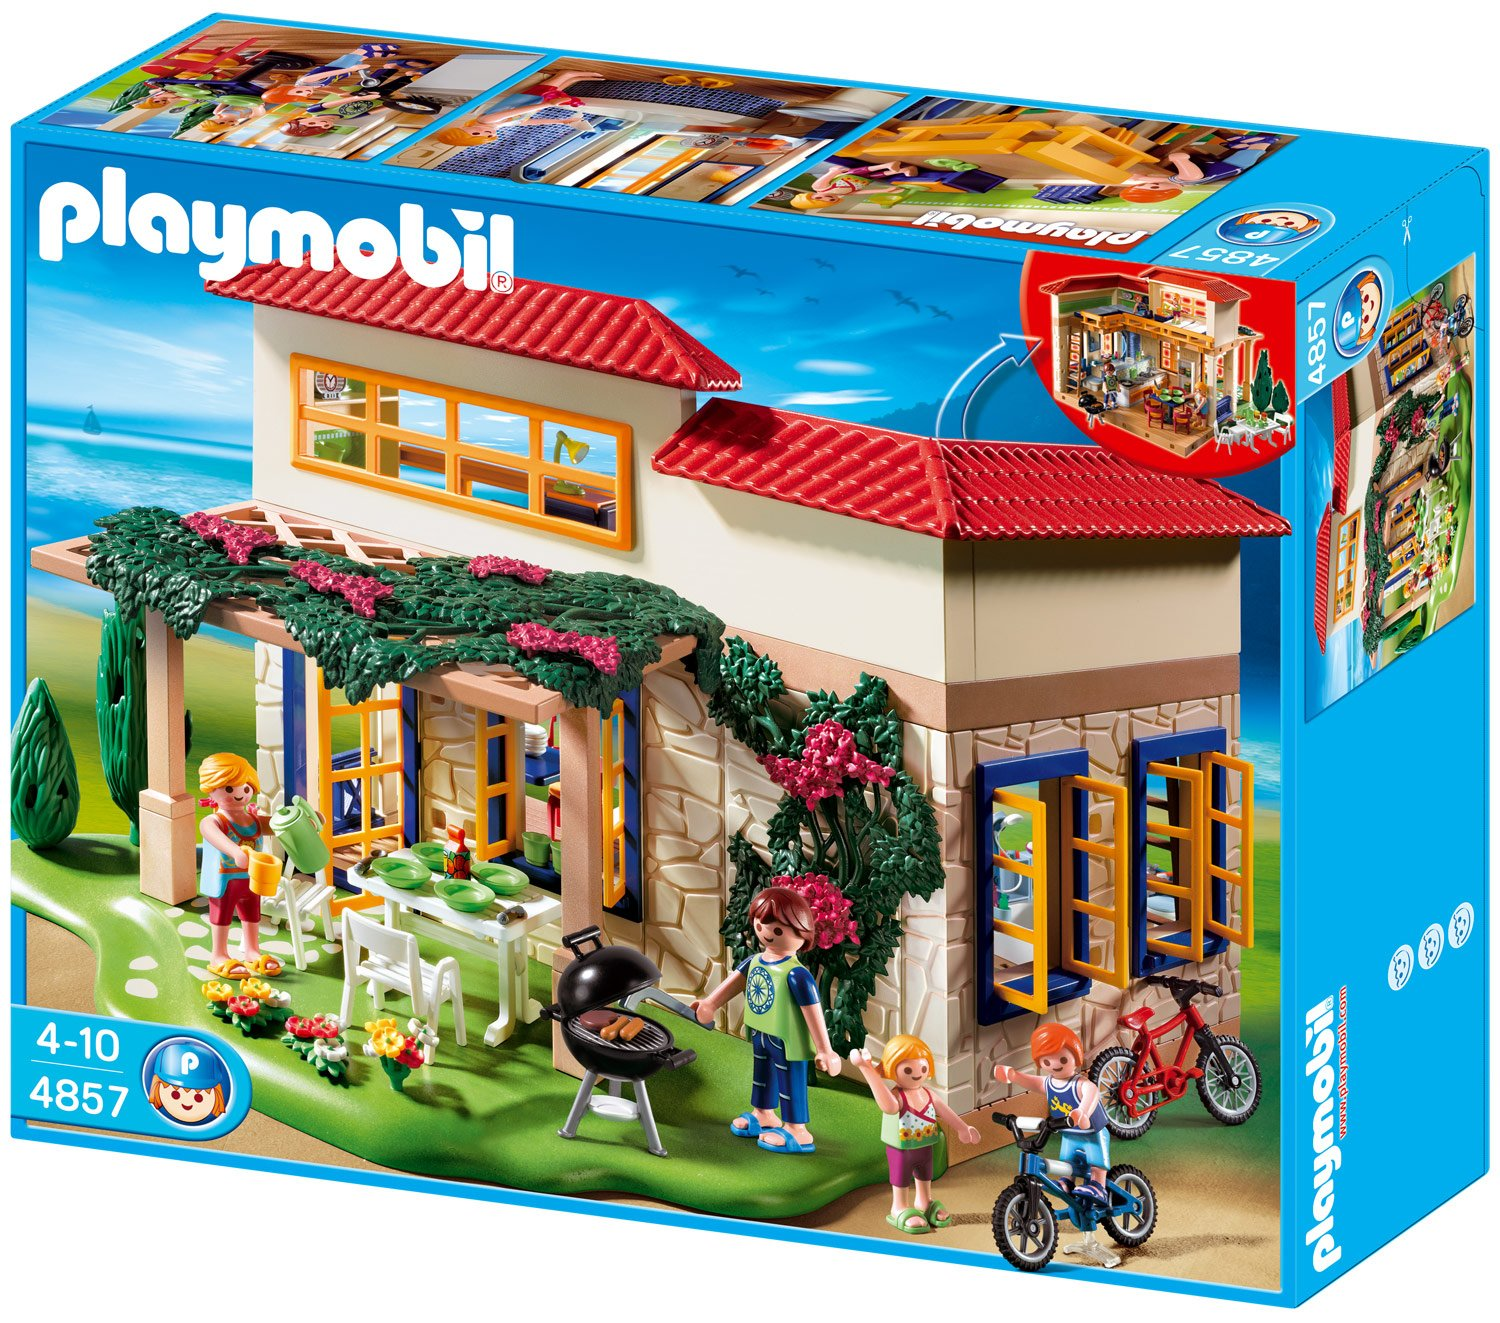 playmobil ferientraumhaus 4857 preisvergleich test. Black Bedroom Furniture Sets. Home Design Ideas